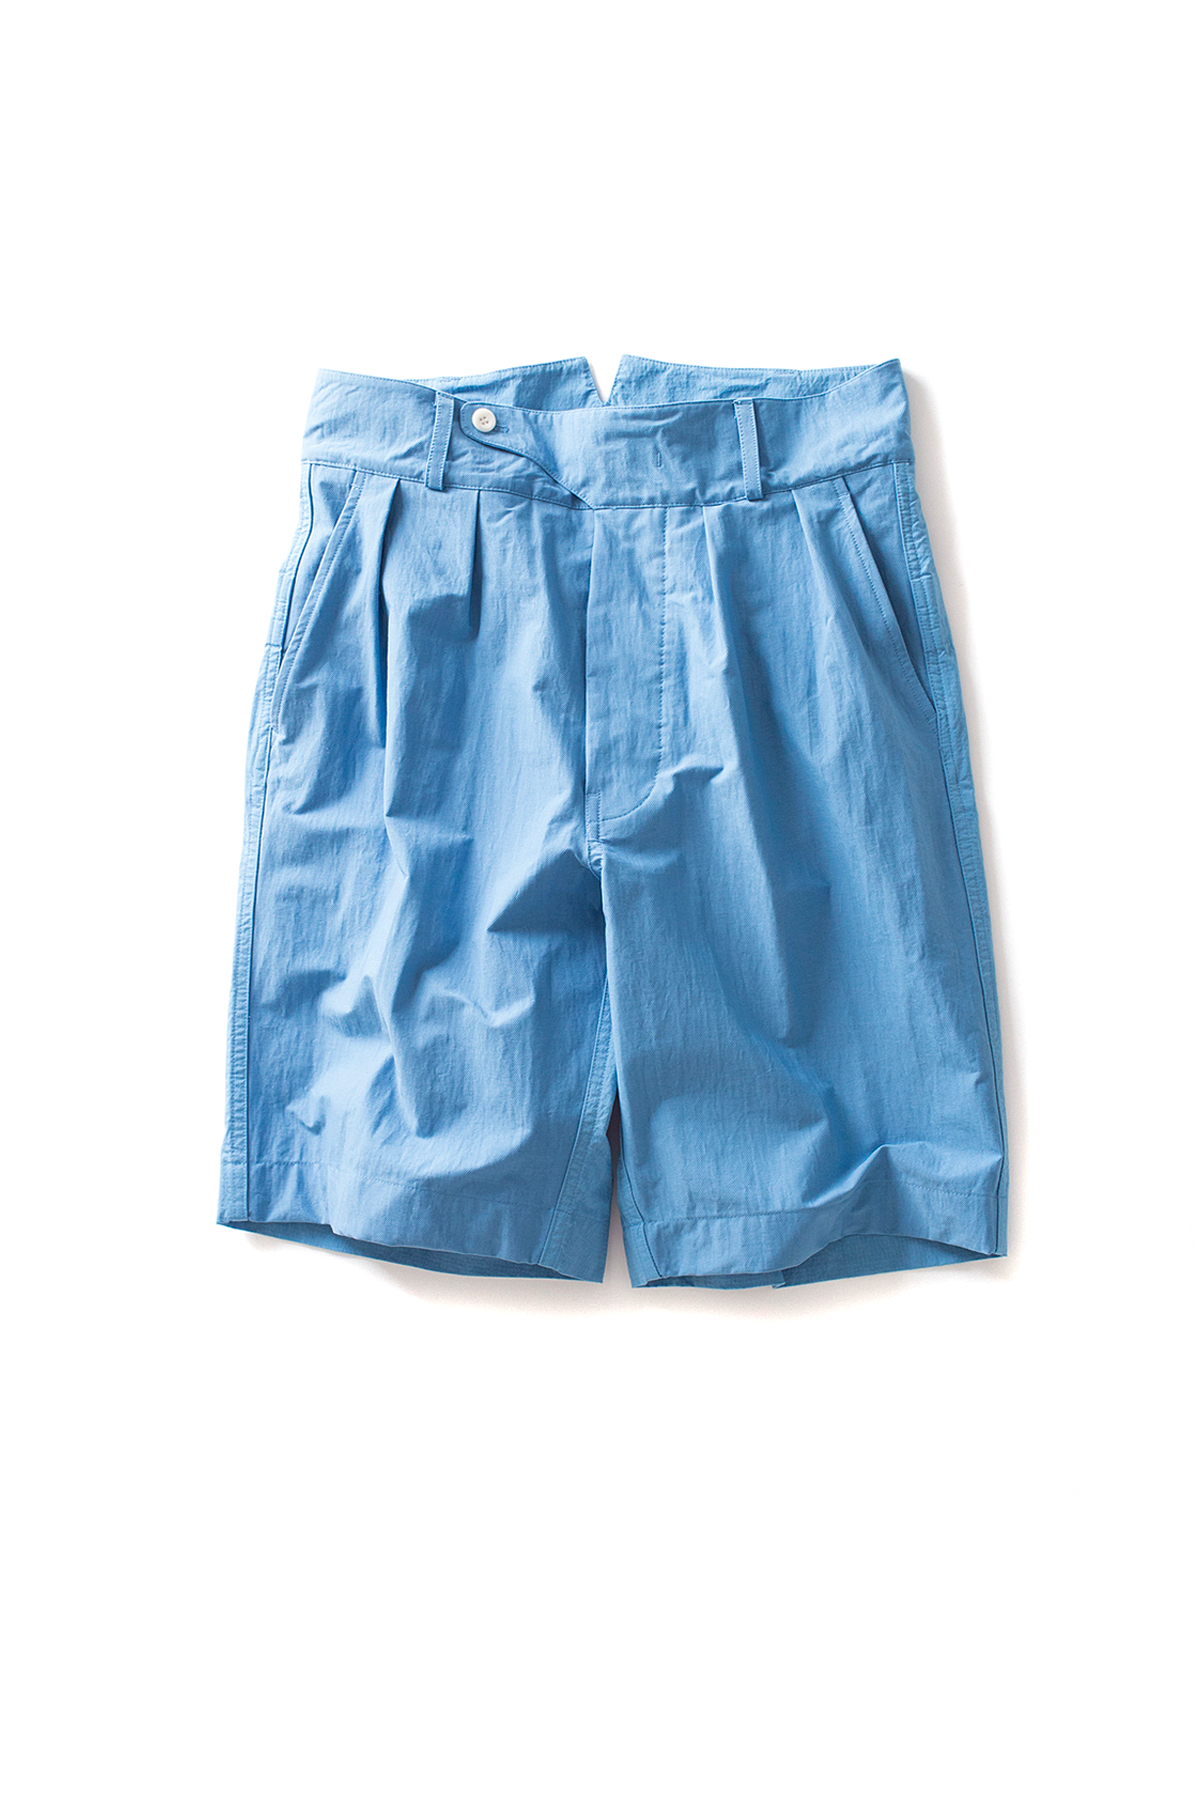 Document : Light Indigo Shorts (Light Indigo)